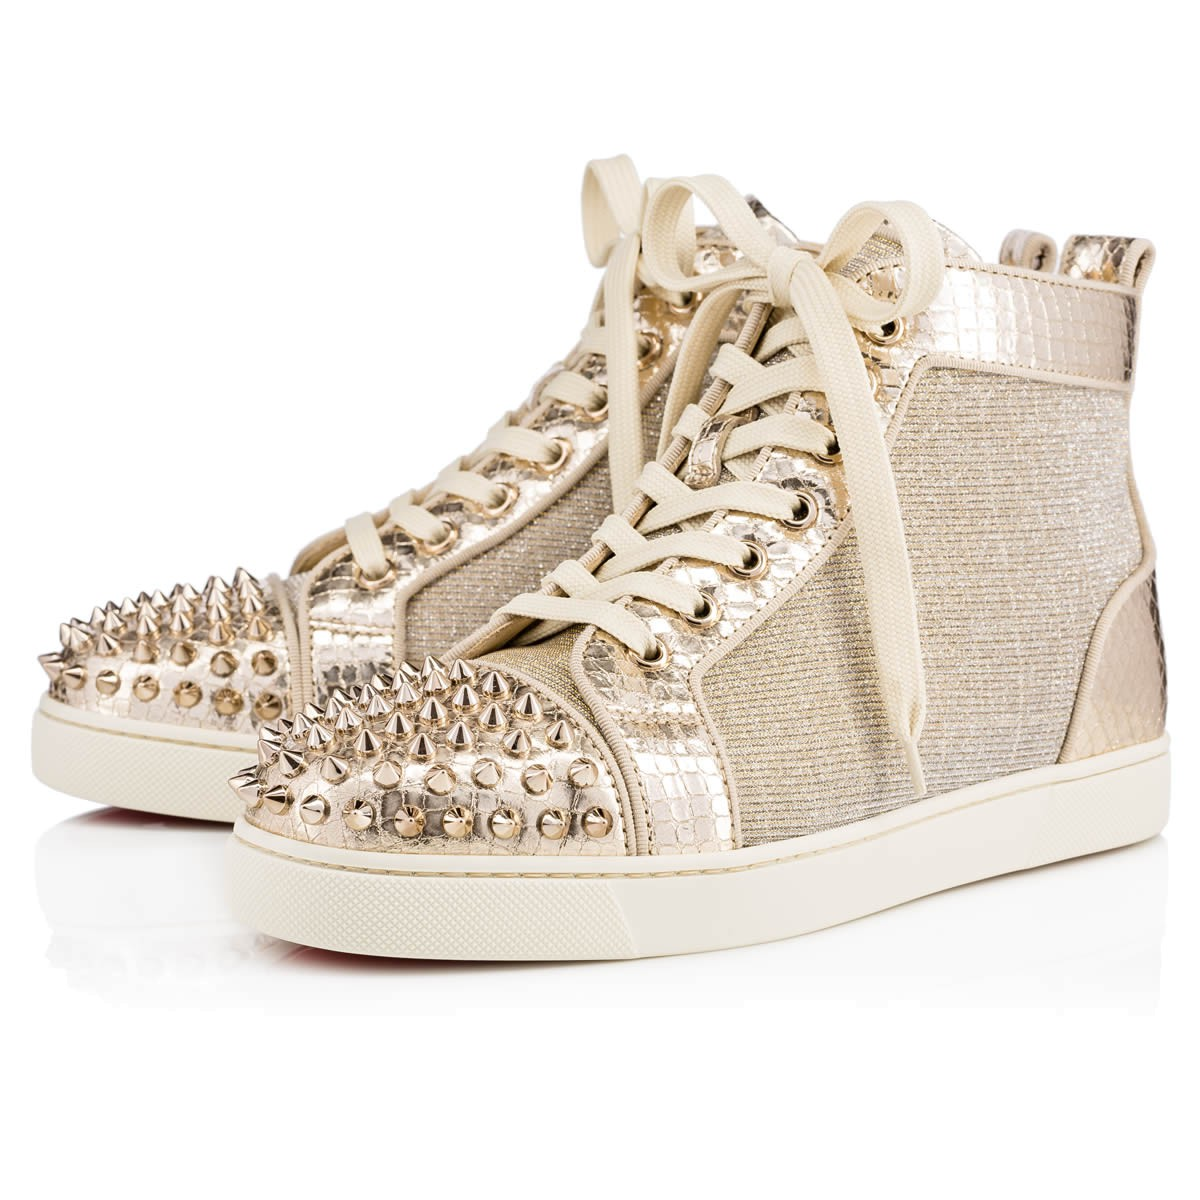 online store 4b324 feb8d Lou Spikes Metallic High-Top Sneakers in Version Gold